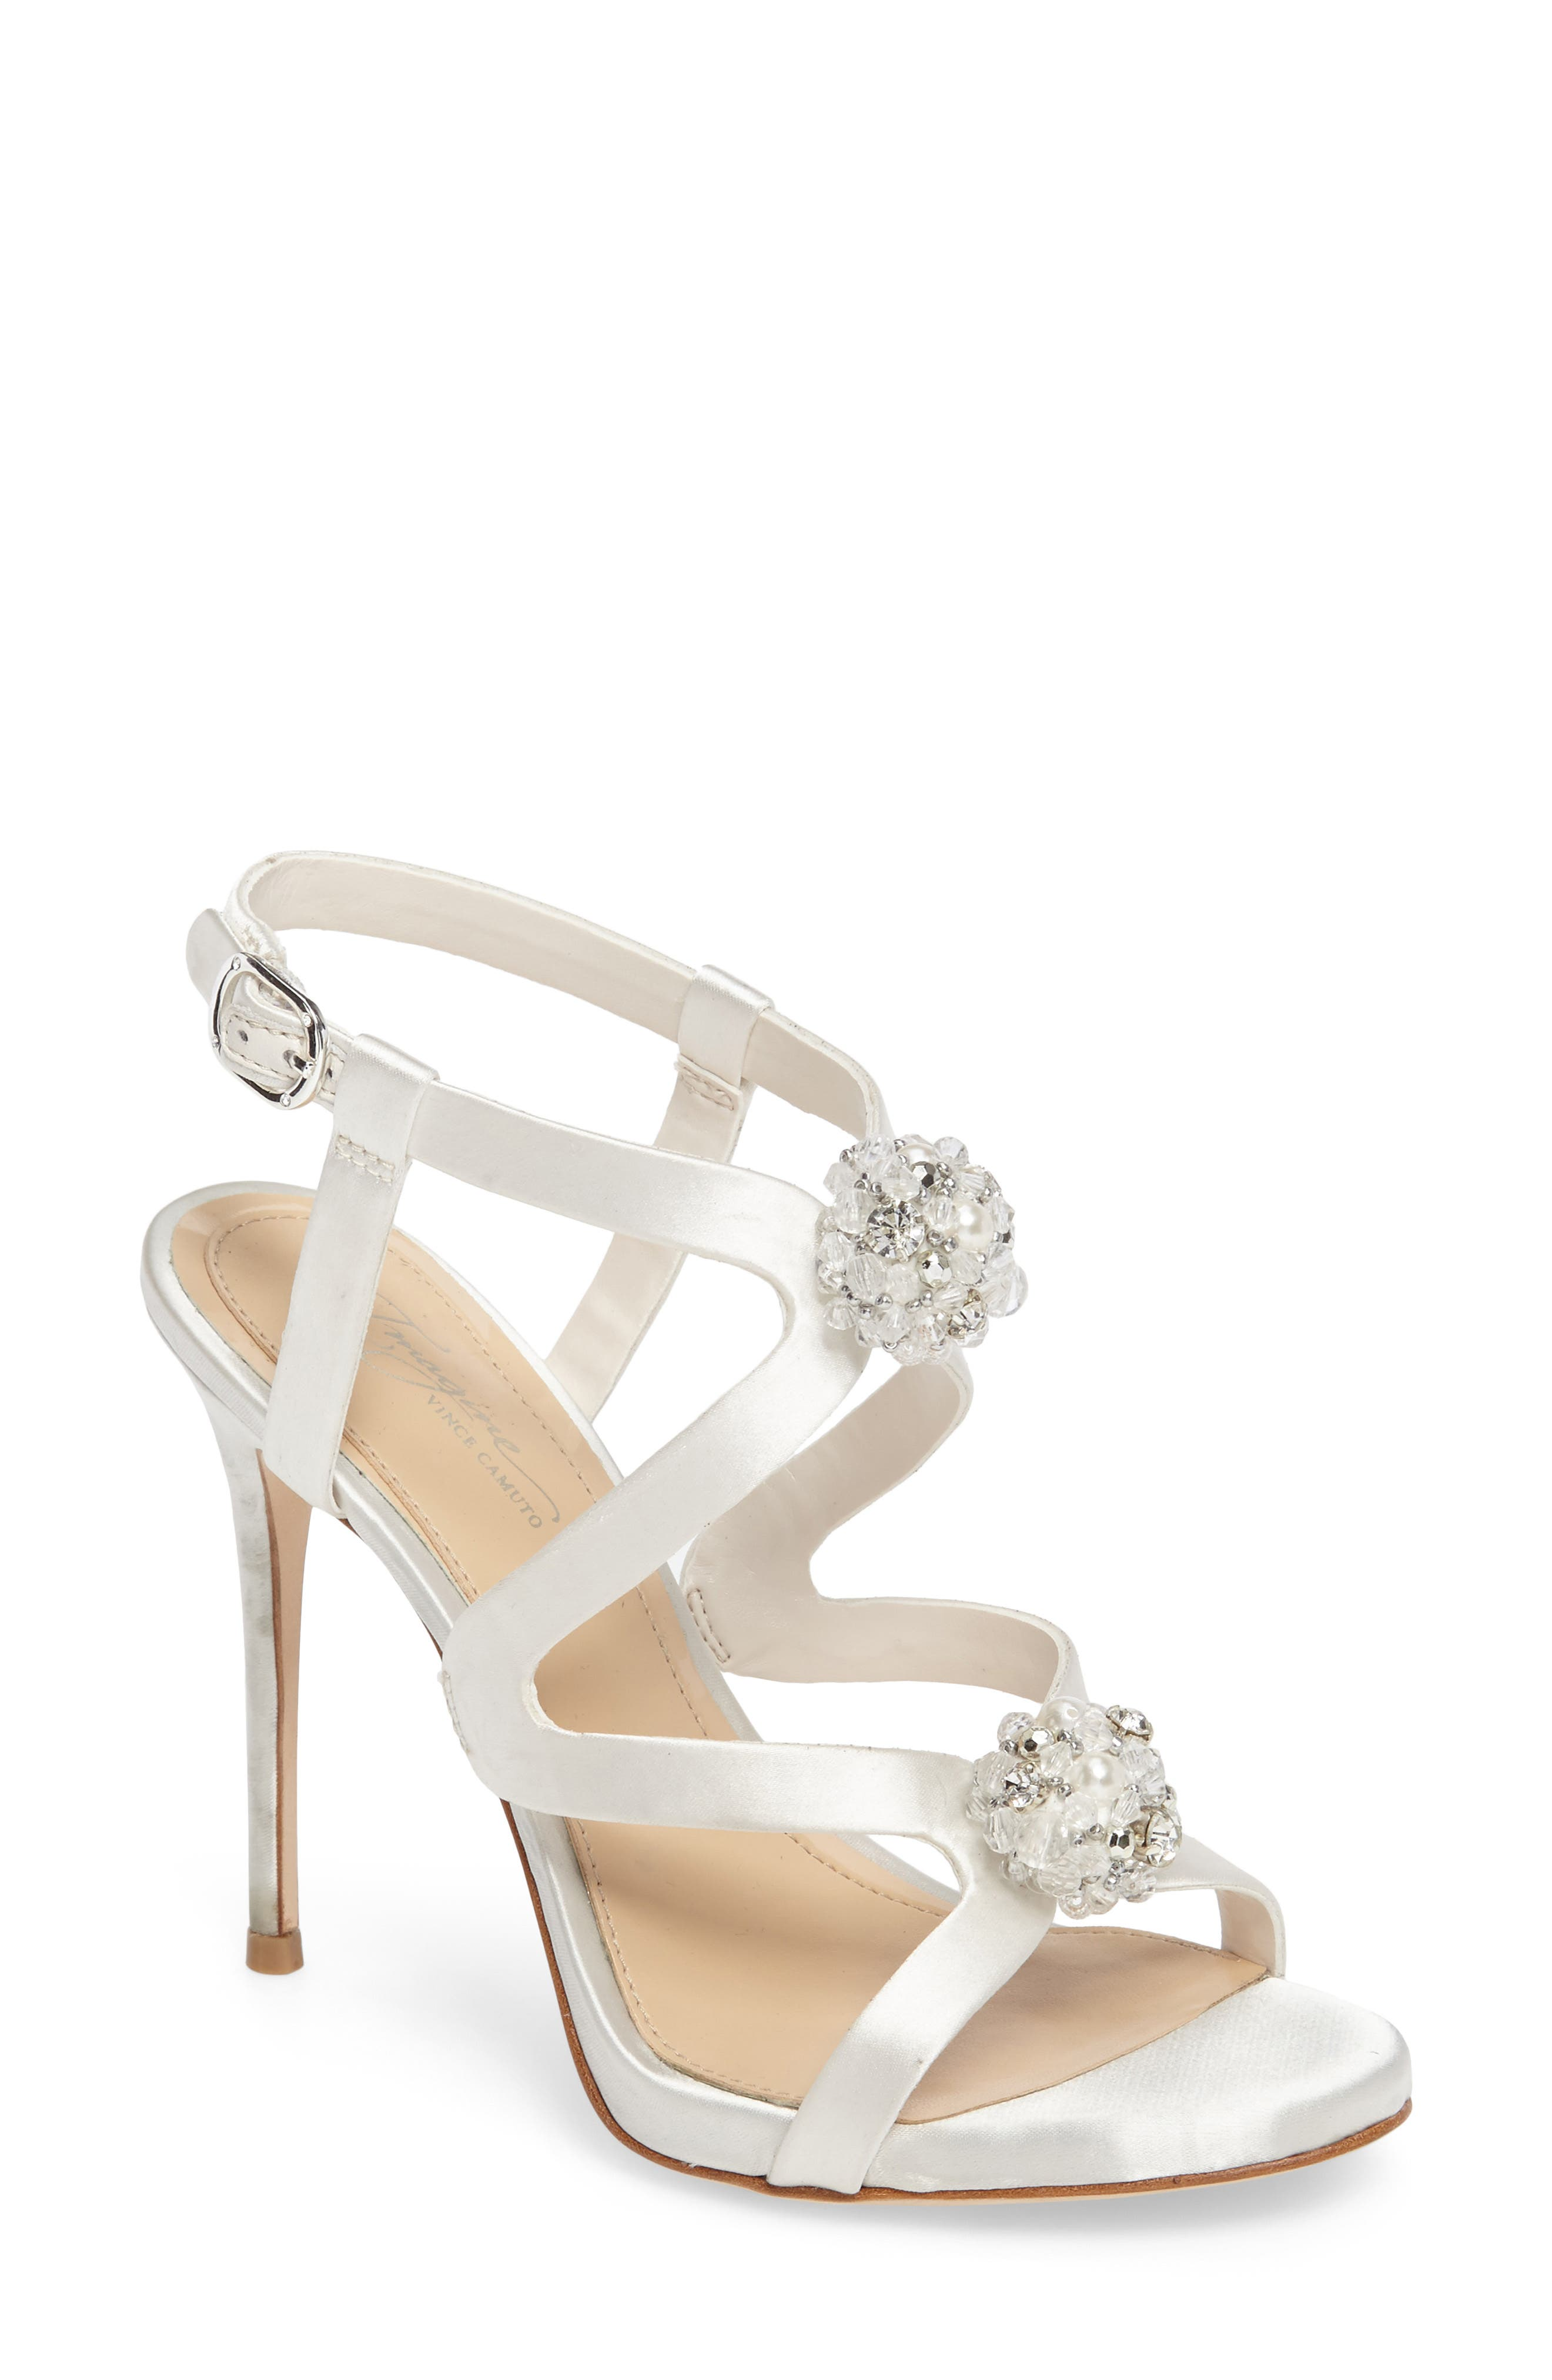 Daija Sandal,                         Main,                         color, Ivory Satin